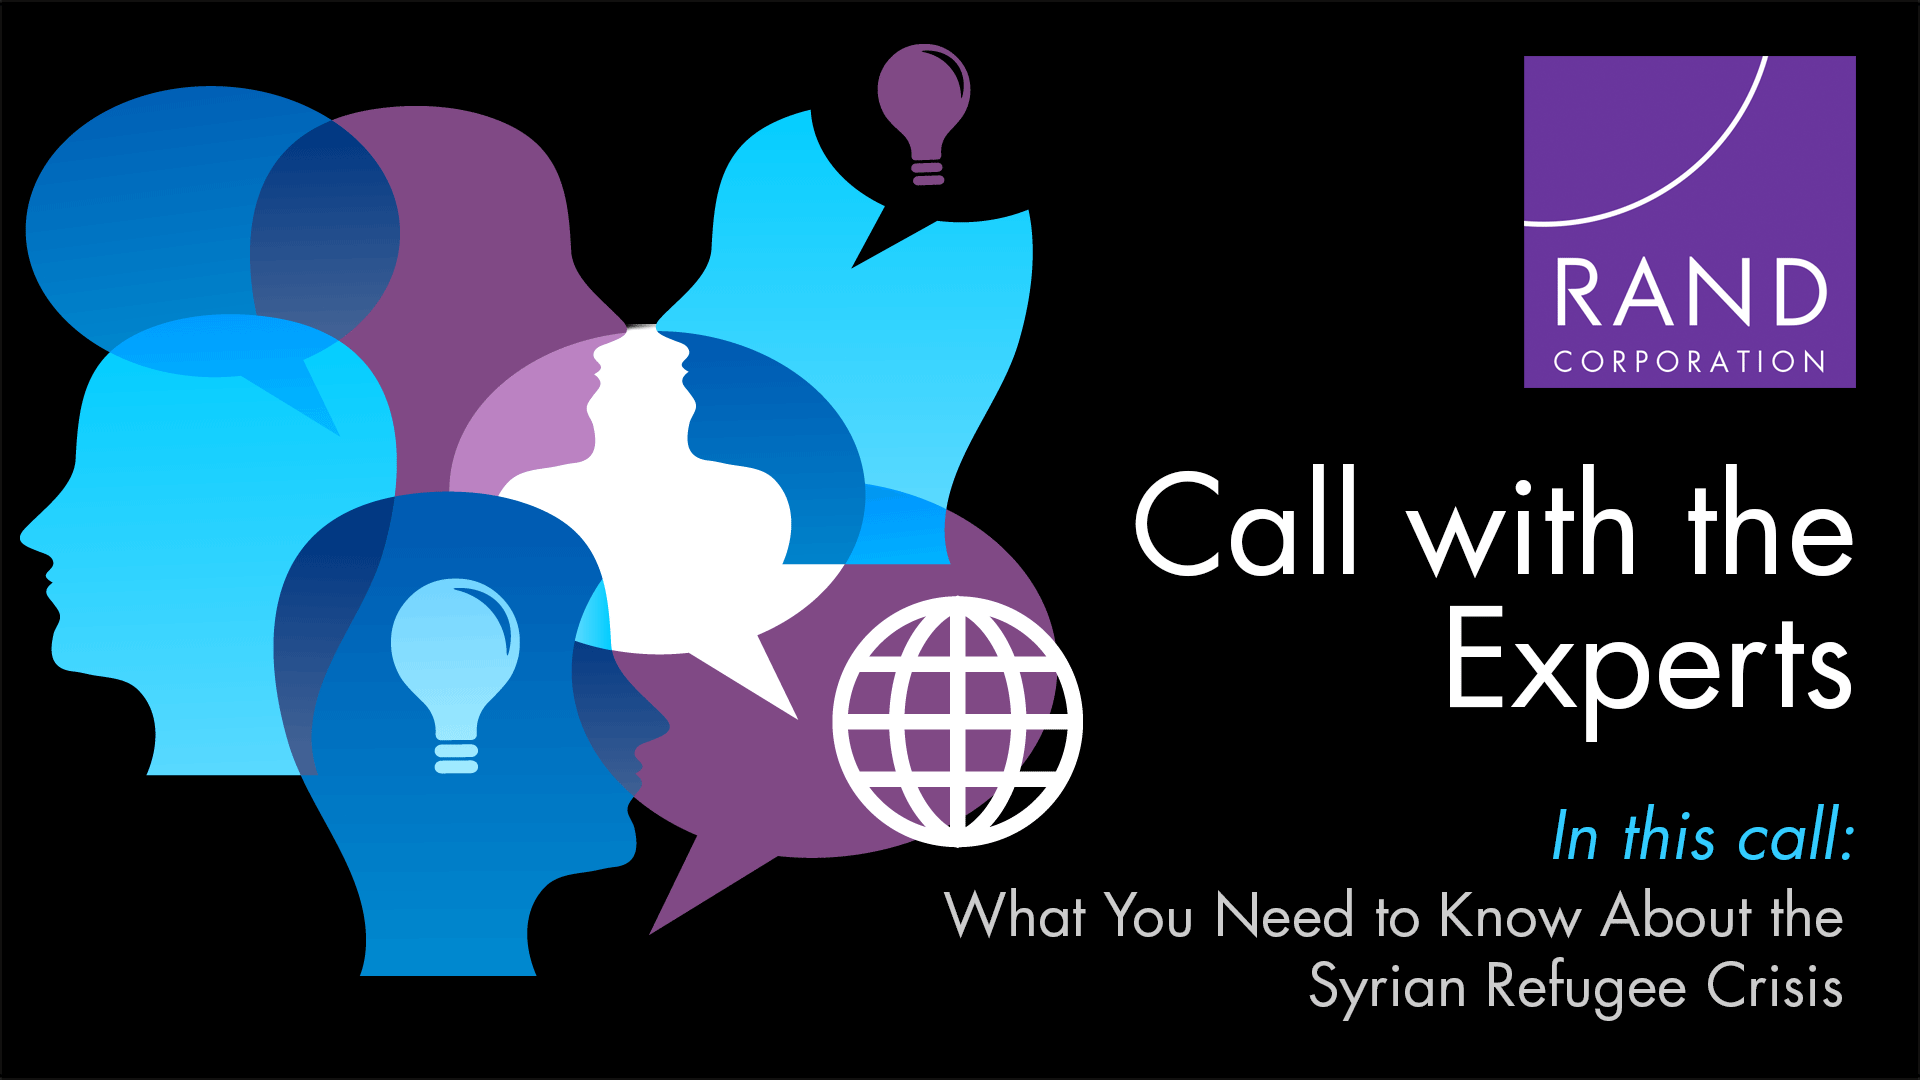 What You Need to Know About the Syrian Refugee Crisis